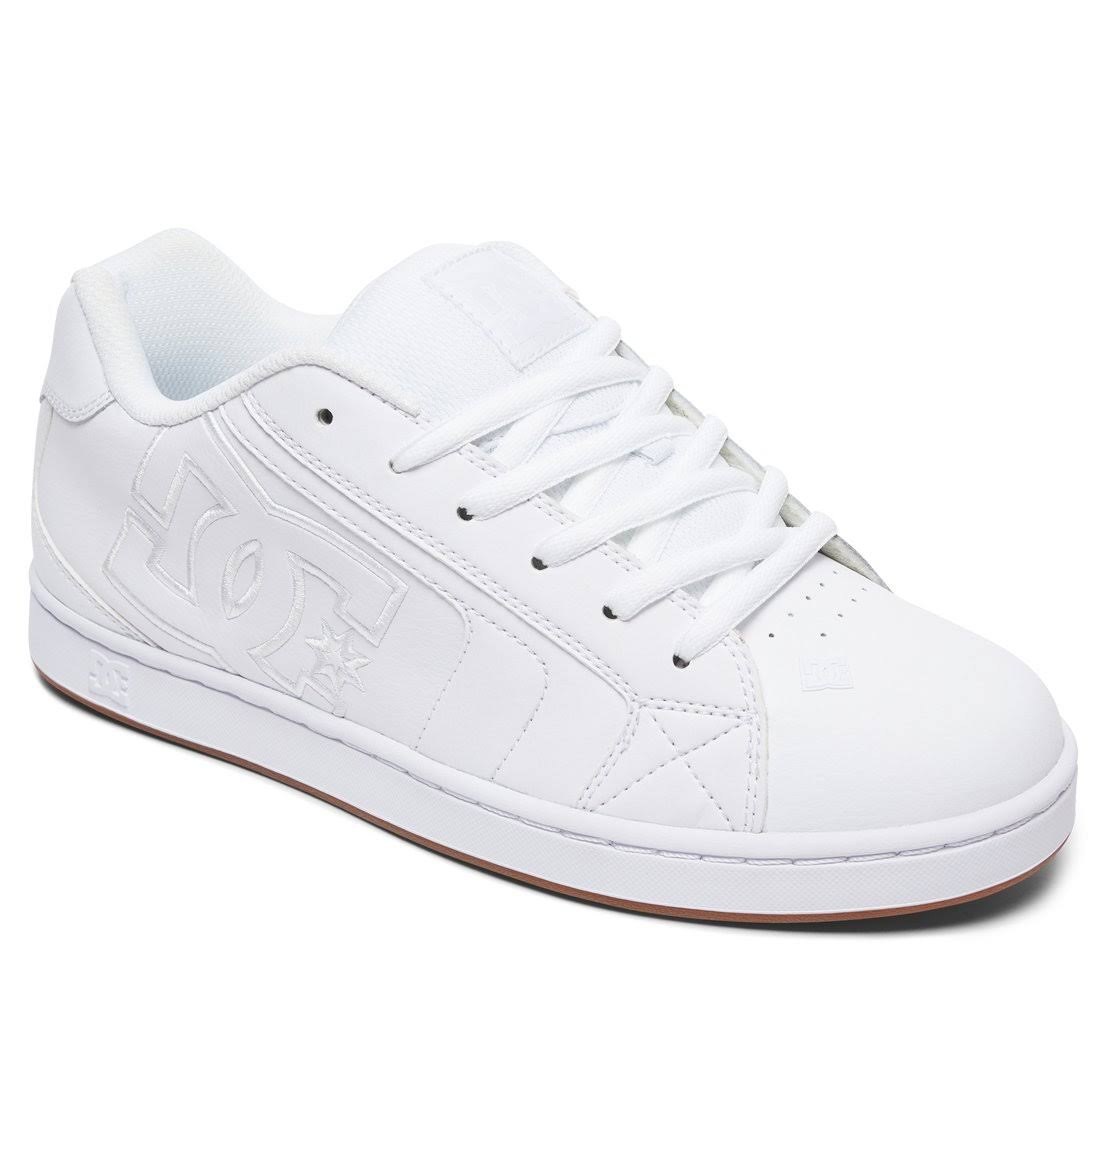 gum Men's Net Dc White 8 D White Medium Shoes Skate wqXxxS5